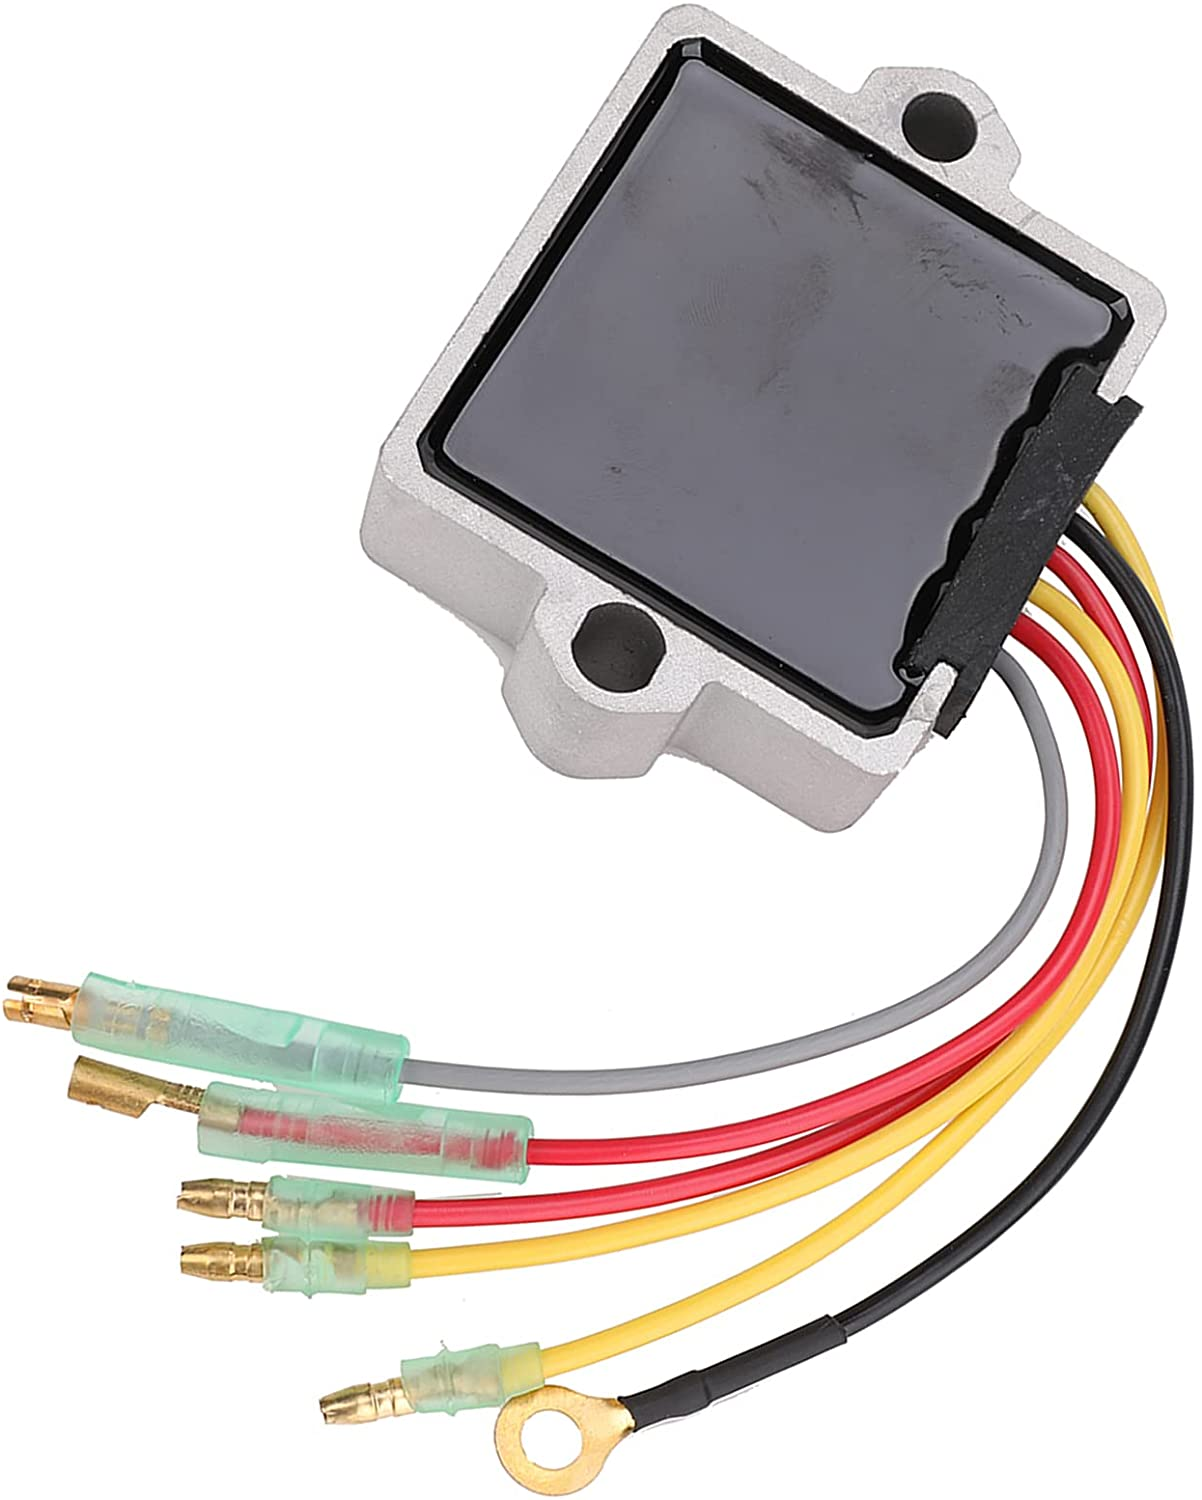 815279T Regulator Inventory Complete Free Shipping cleanup selling sale Rectifier Mercury 883072T Wire 6 for V